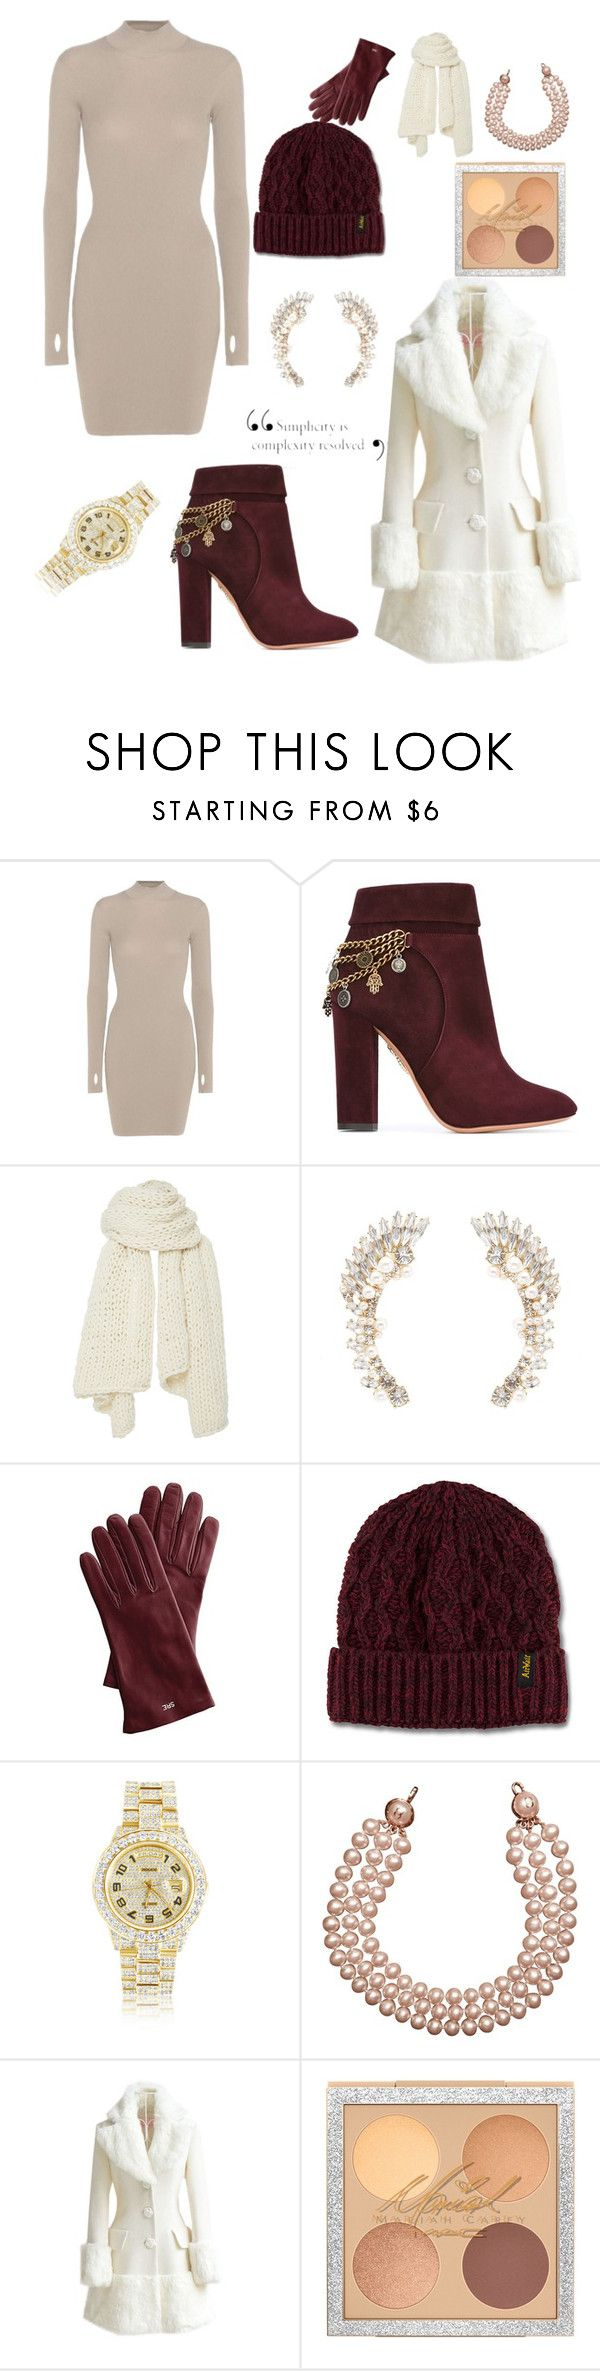 """bundle up"" by mariahhightower ❤ liked on Polyvore featuring adidas Originals, Aquazzura, I Love Mr. Mittens, Charlotte Russe, Mark & Graham, Dr. Martens, Rolex, Chanel and WithChic"